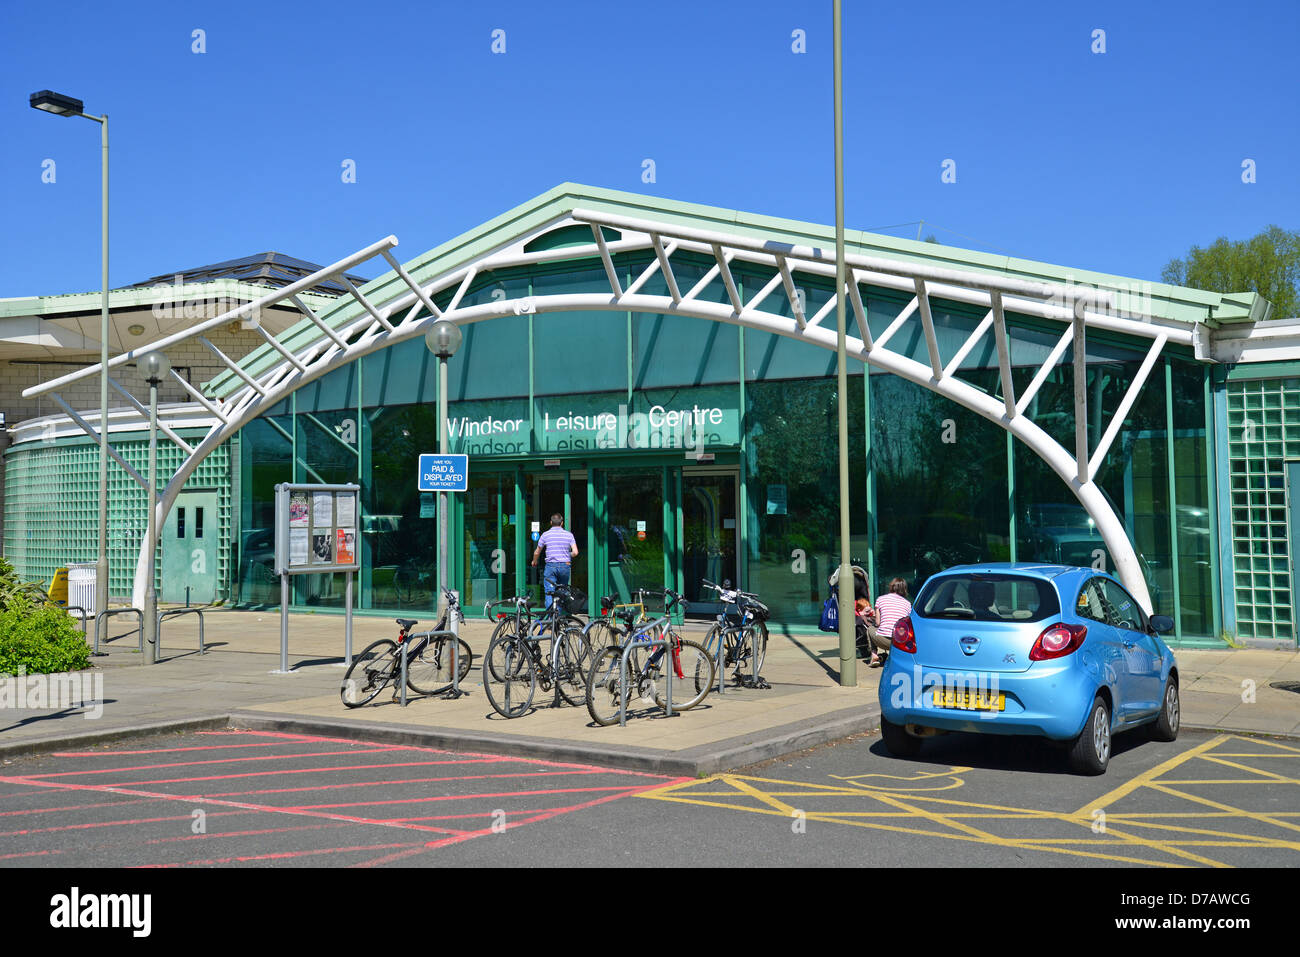 Entrance To Windsor Leisure Centre Clewer Mead Stovell Road Stock Photo Royalty Free Image